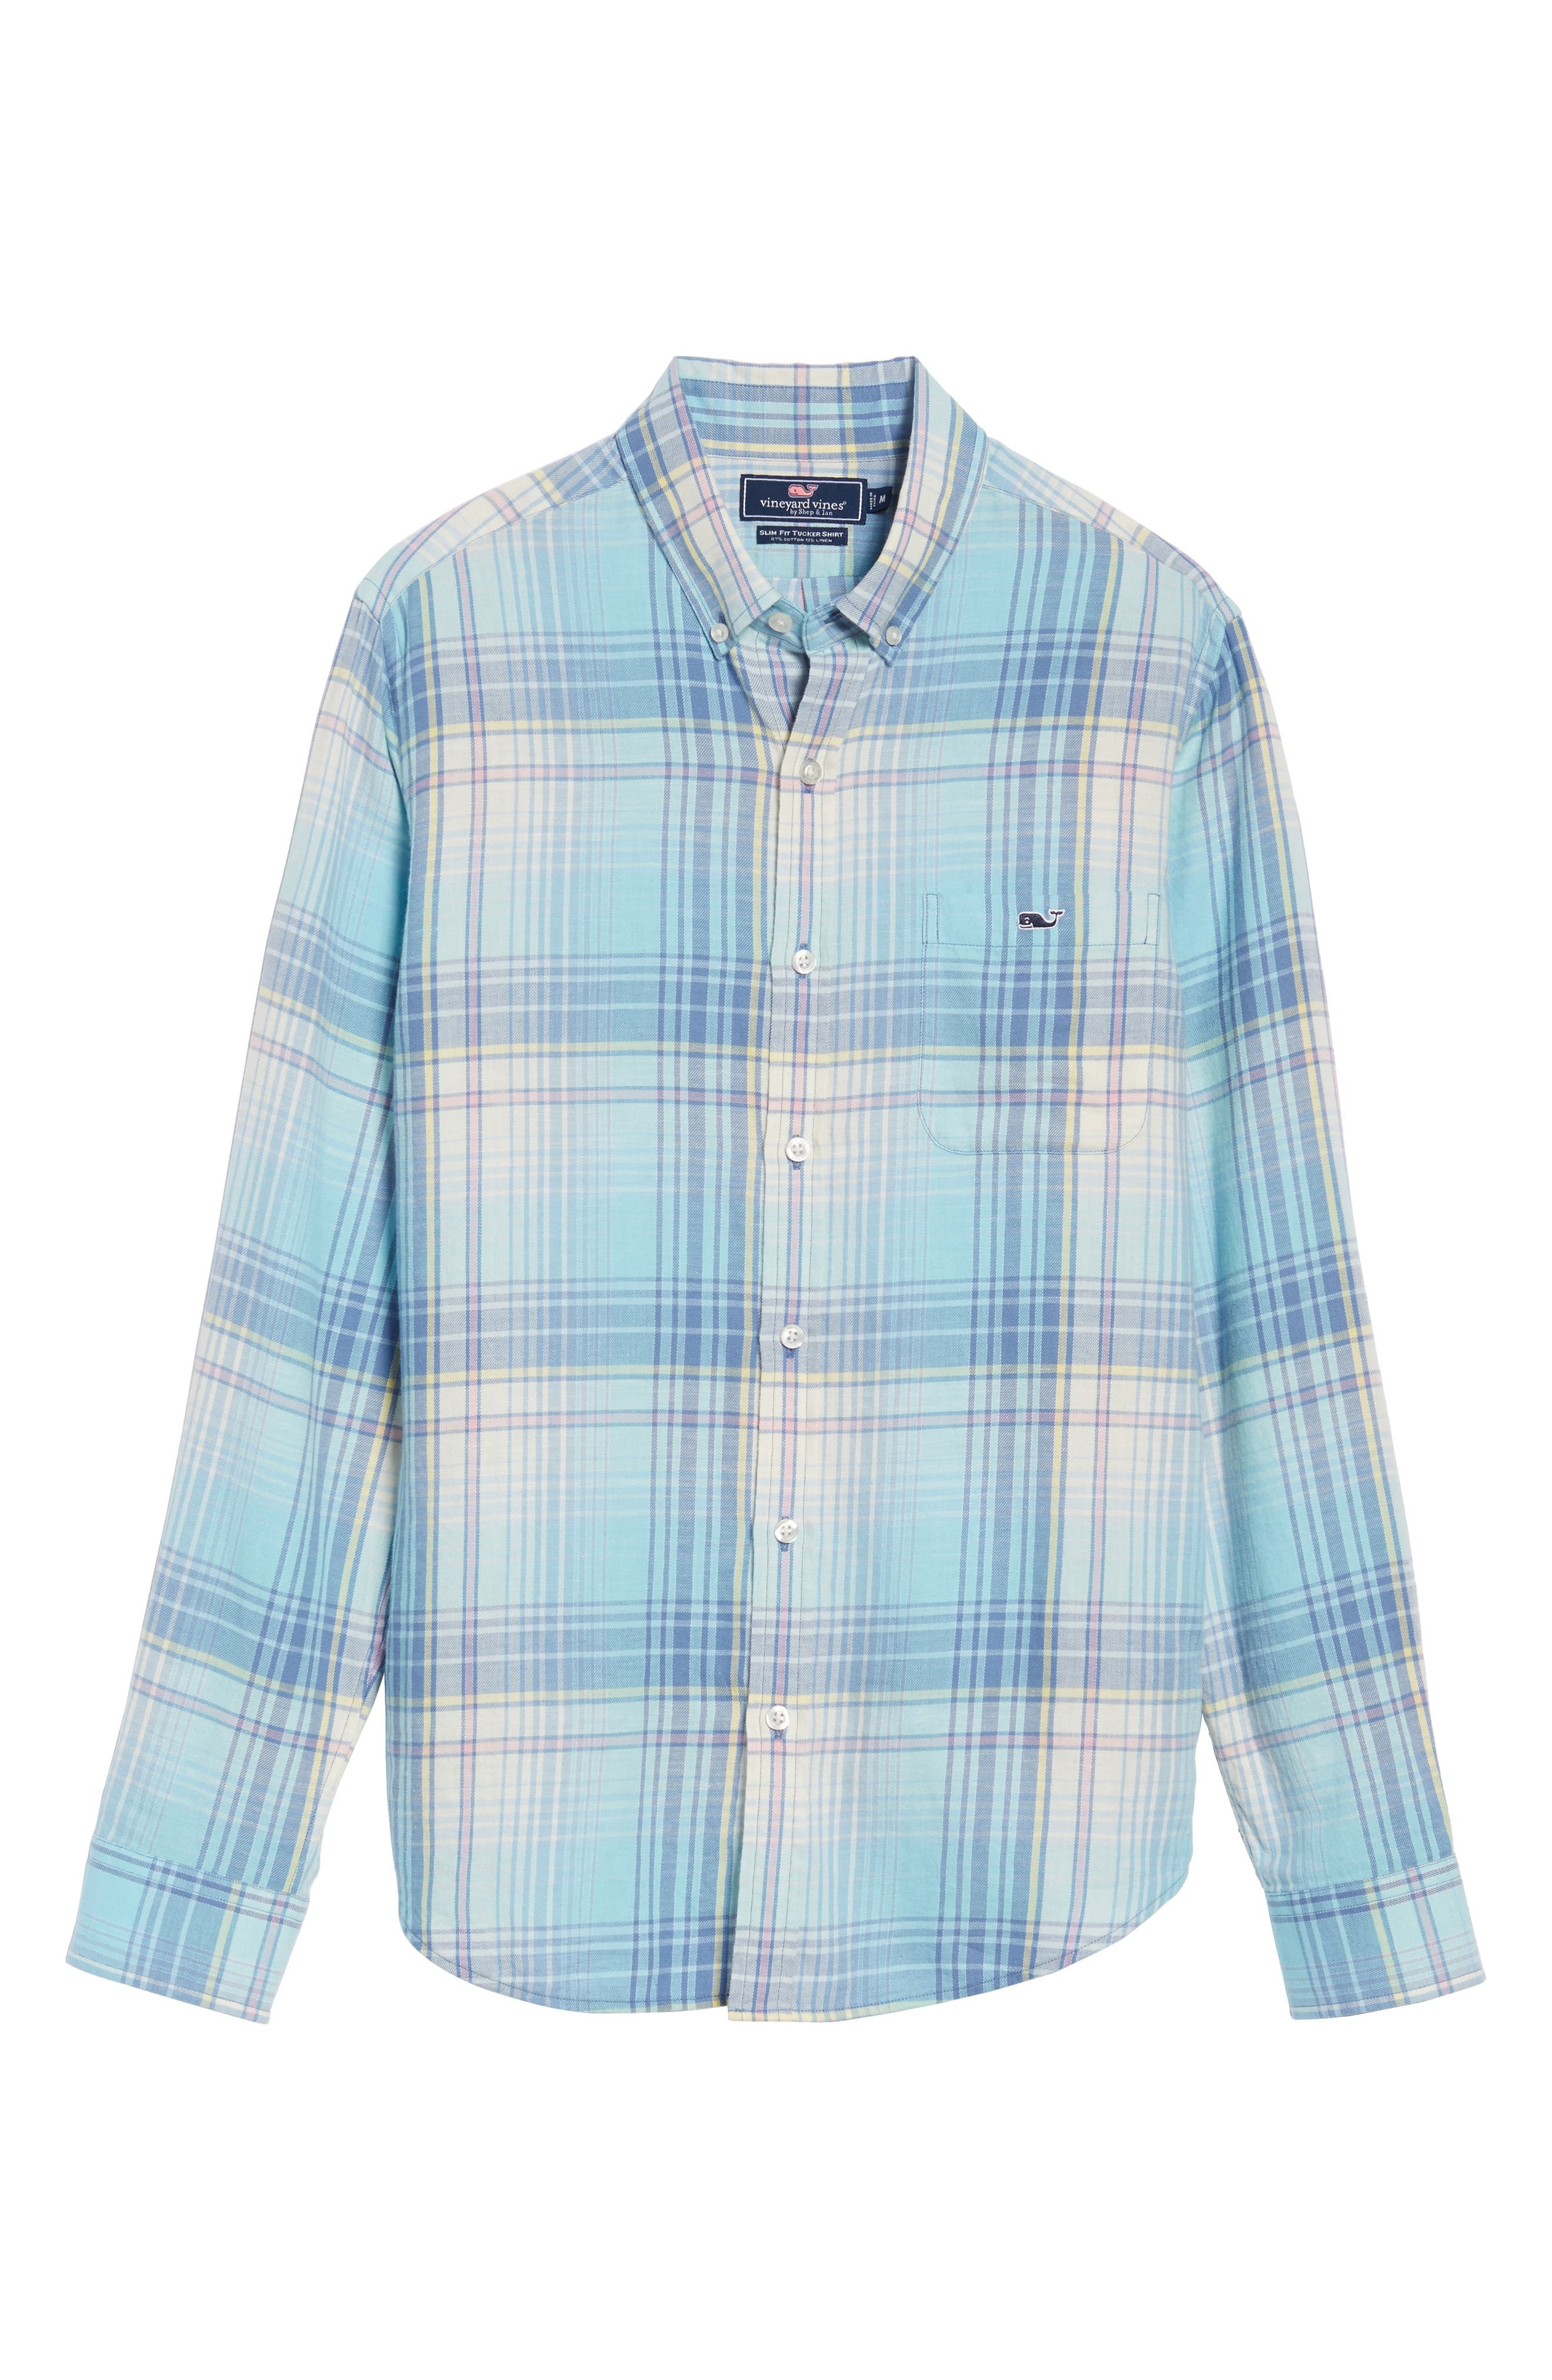 Pequot Plaid Slim Fit Tucker Sport Shirt,                             Alternate thumbnail 6, color,                             435